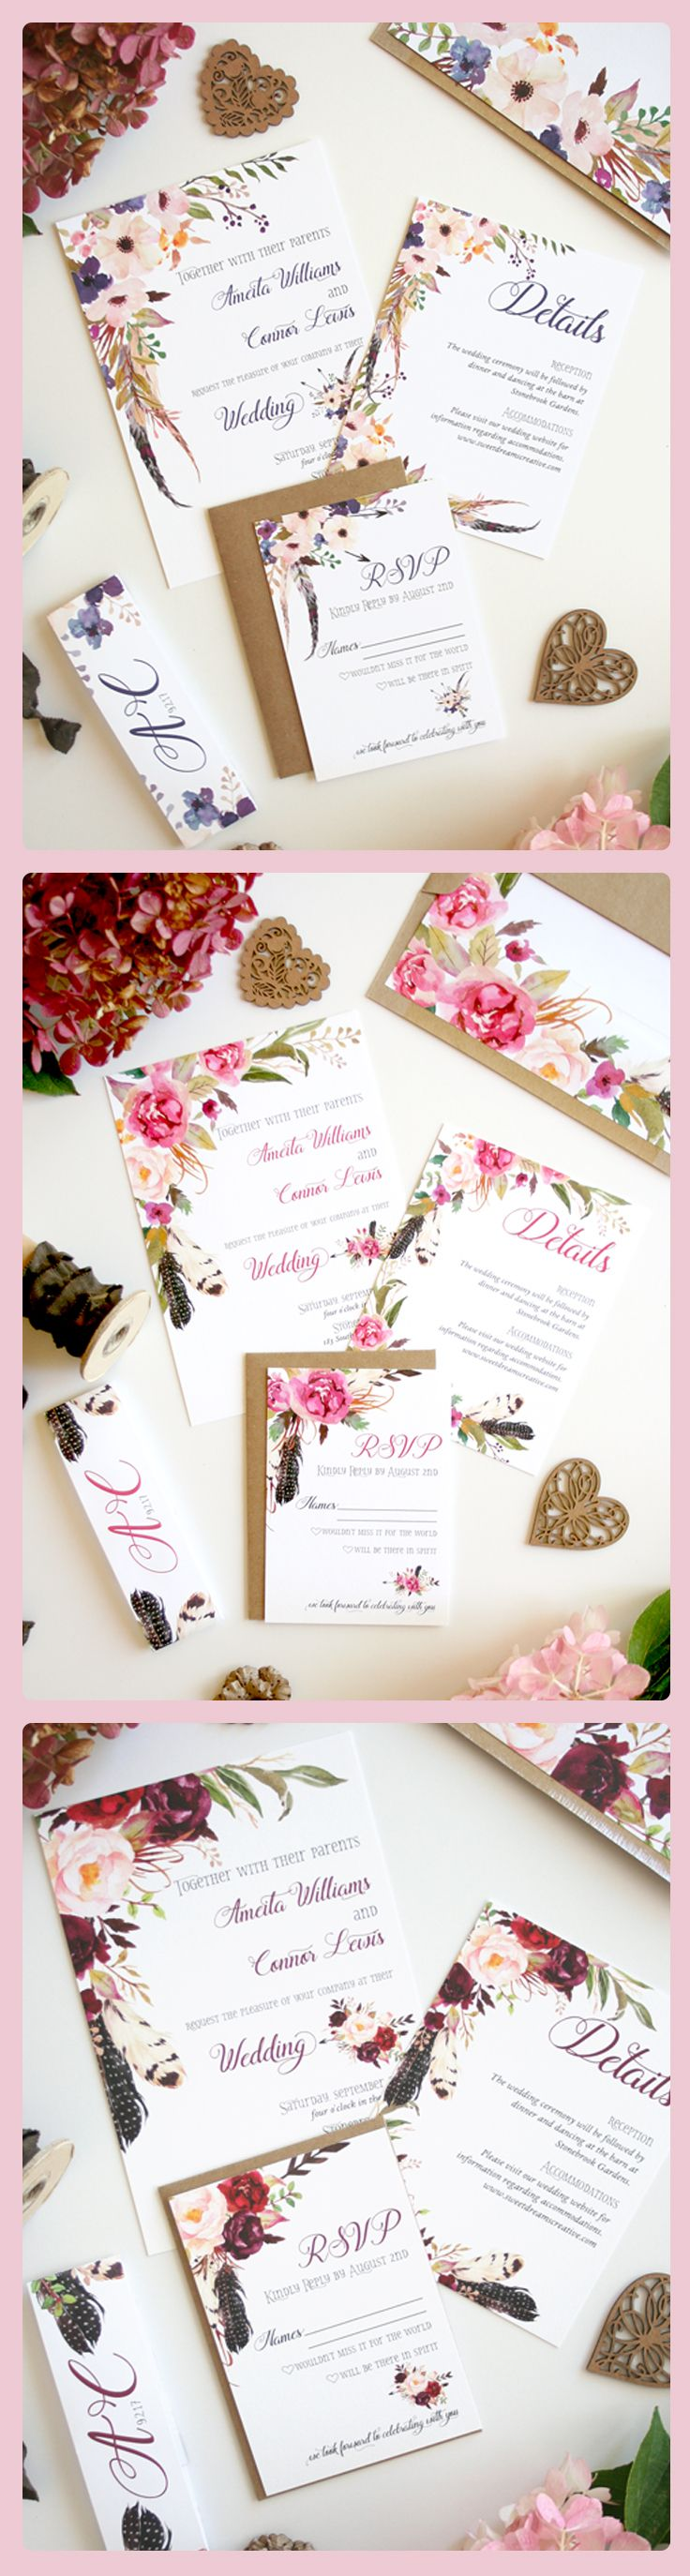 wedding card design software for android%0A Boho Chic Wedding Invitations